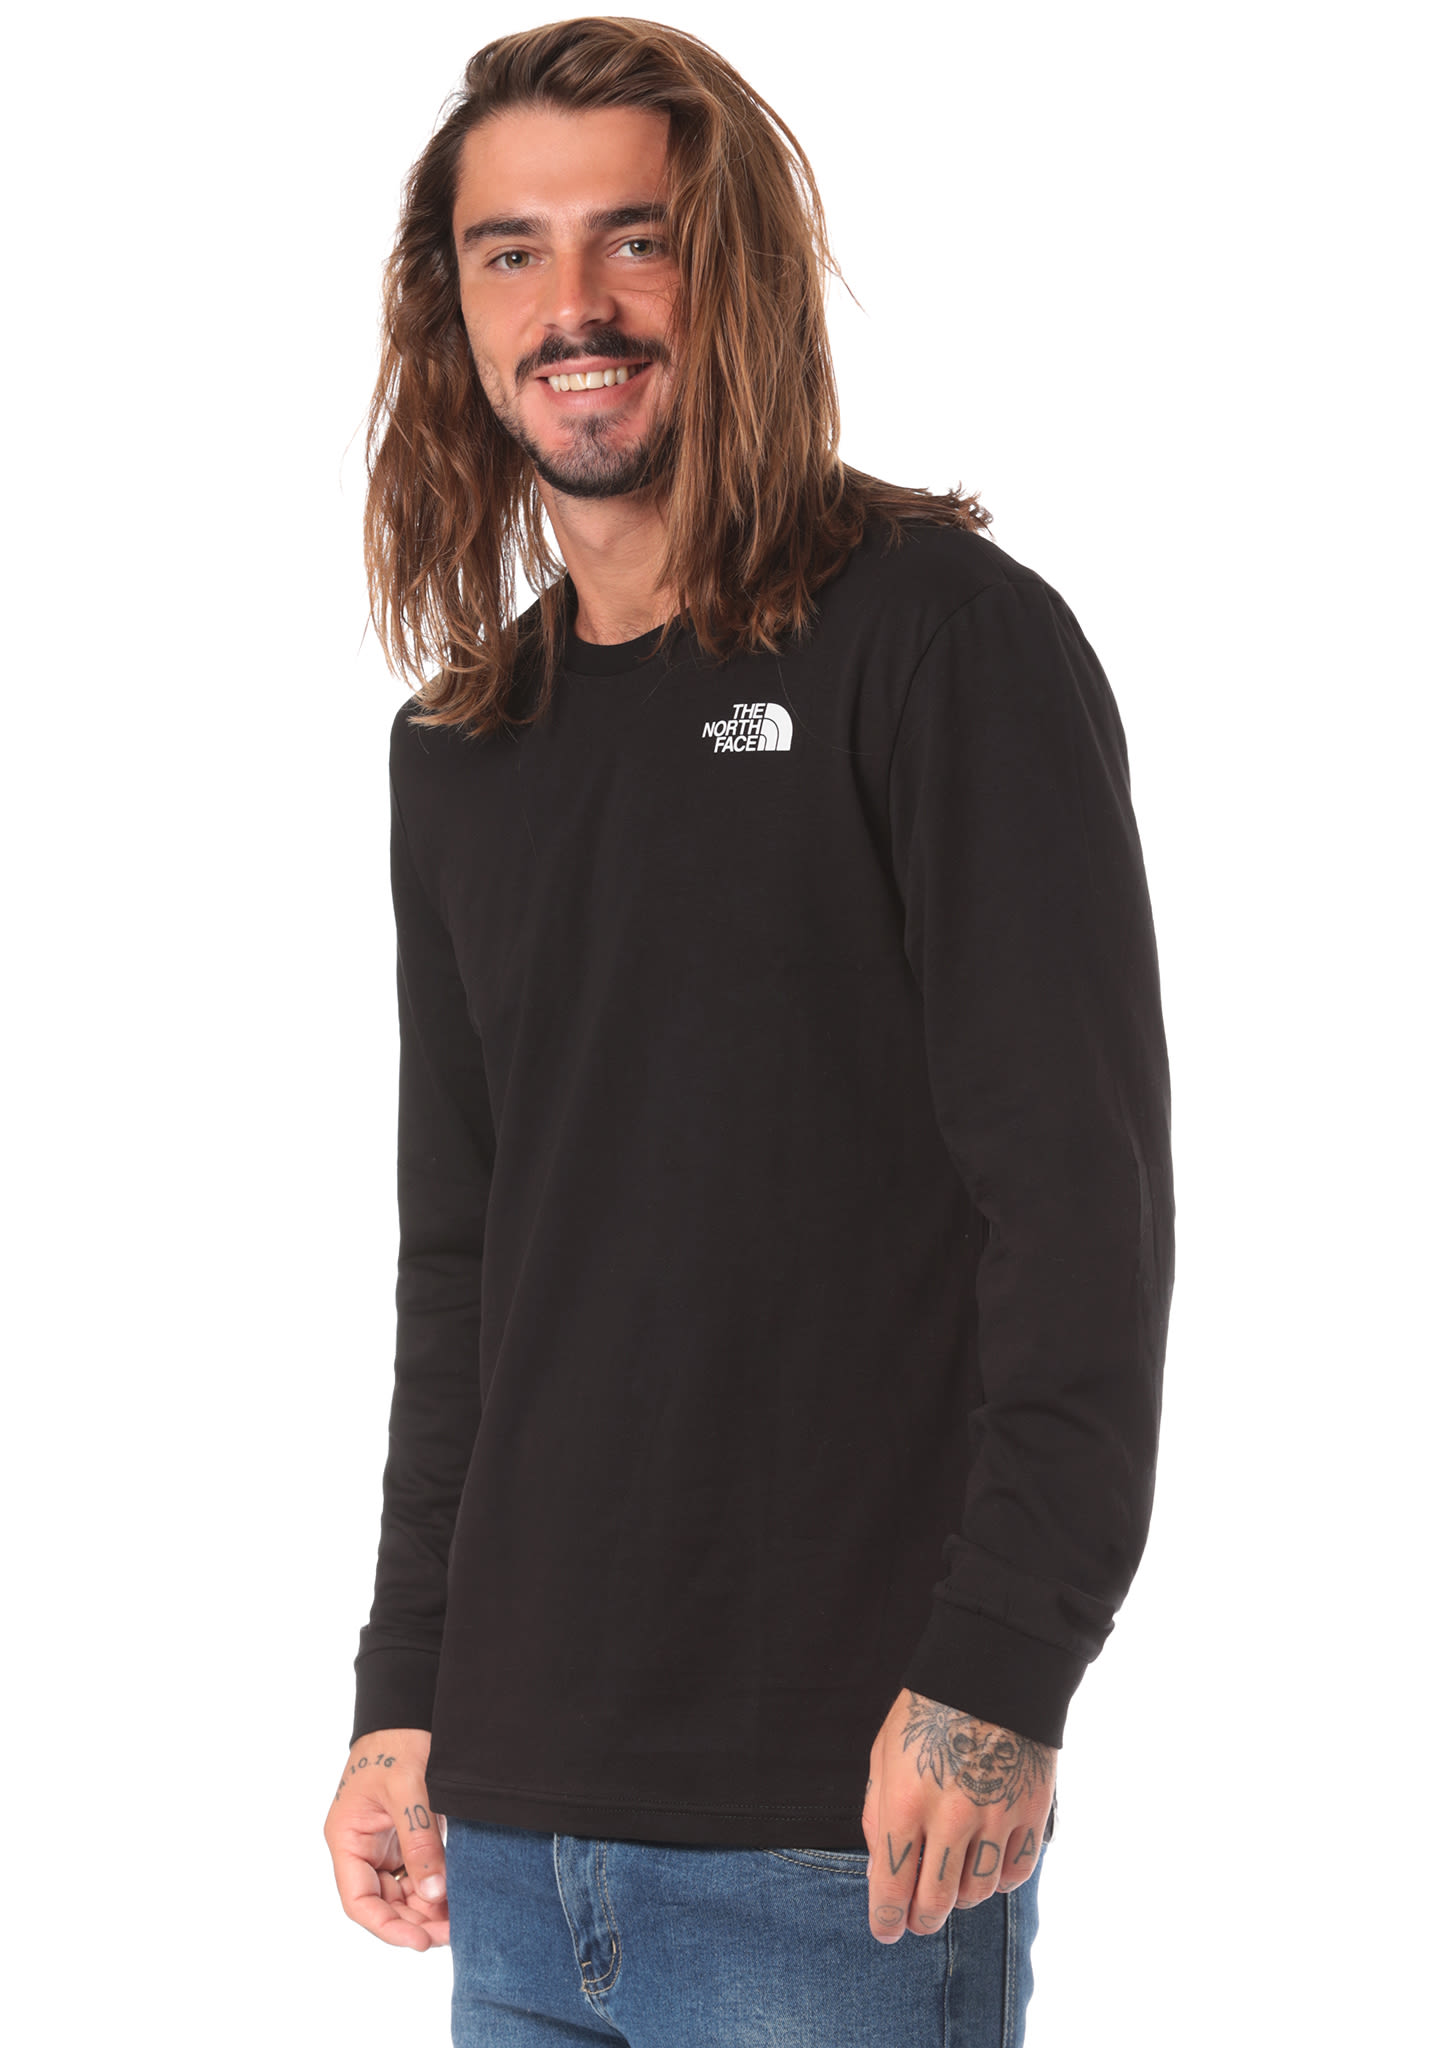 e21cb8013eb THE NORTH FACE Simple Dome - Long-sleeved Shirt for Men - Black - Planet  Sports